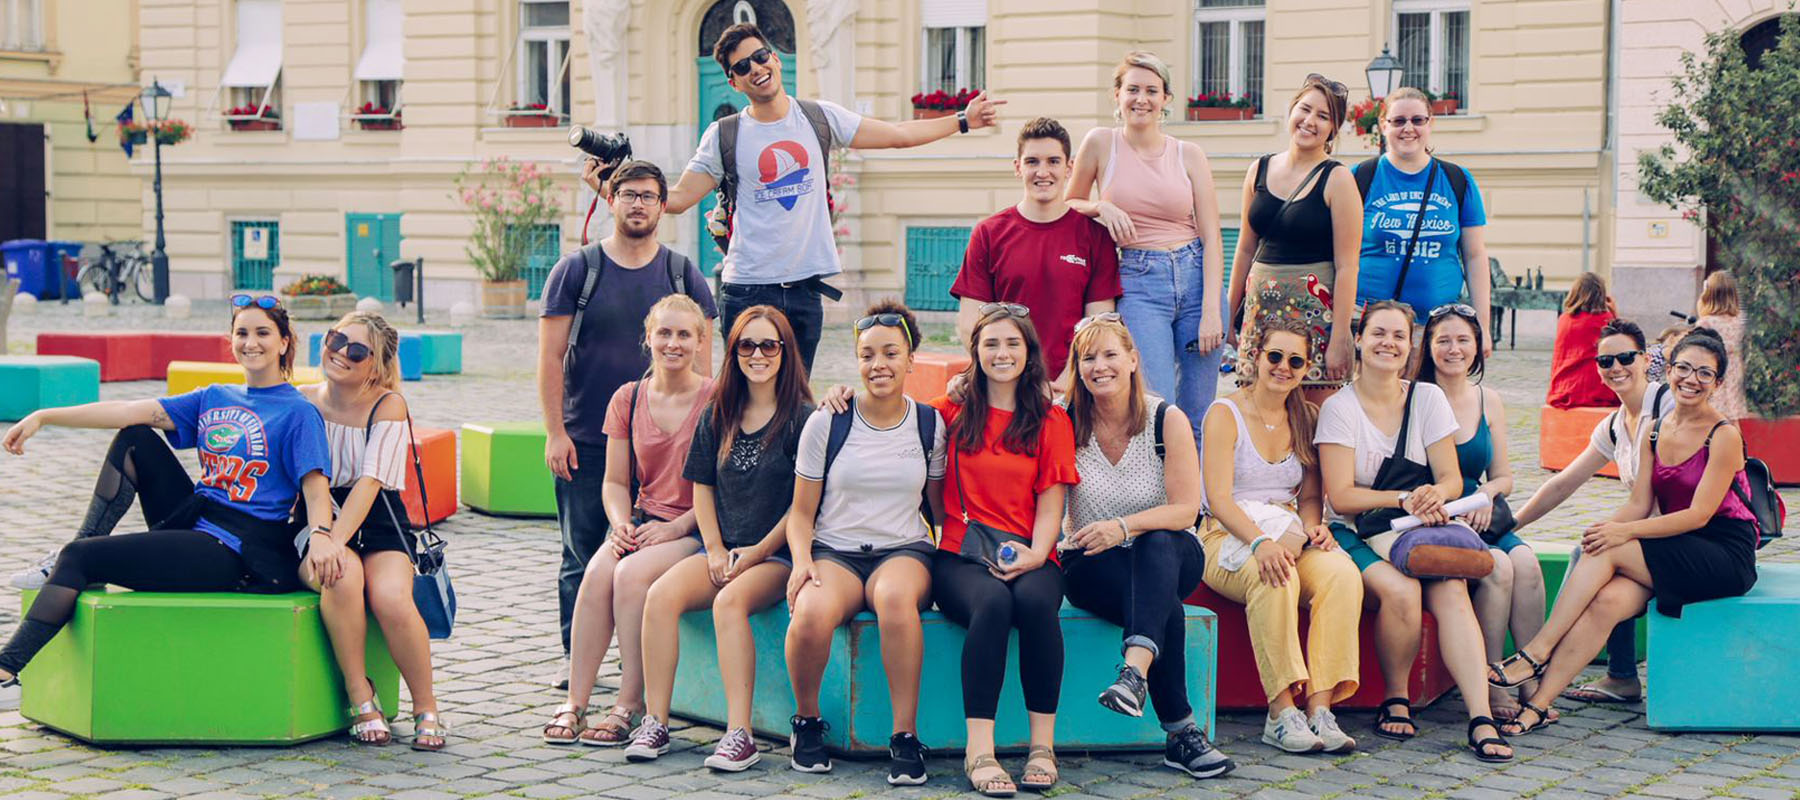 THE NEXT HUNGARIAN BIRTHRIGHT TRIP DATES: JUNE 14-30, 2019